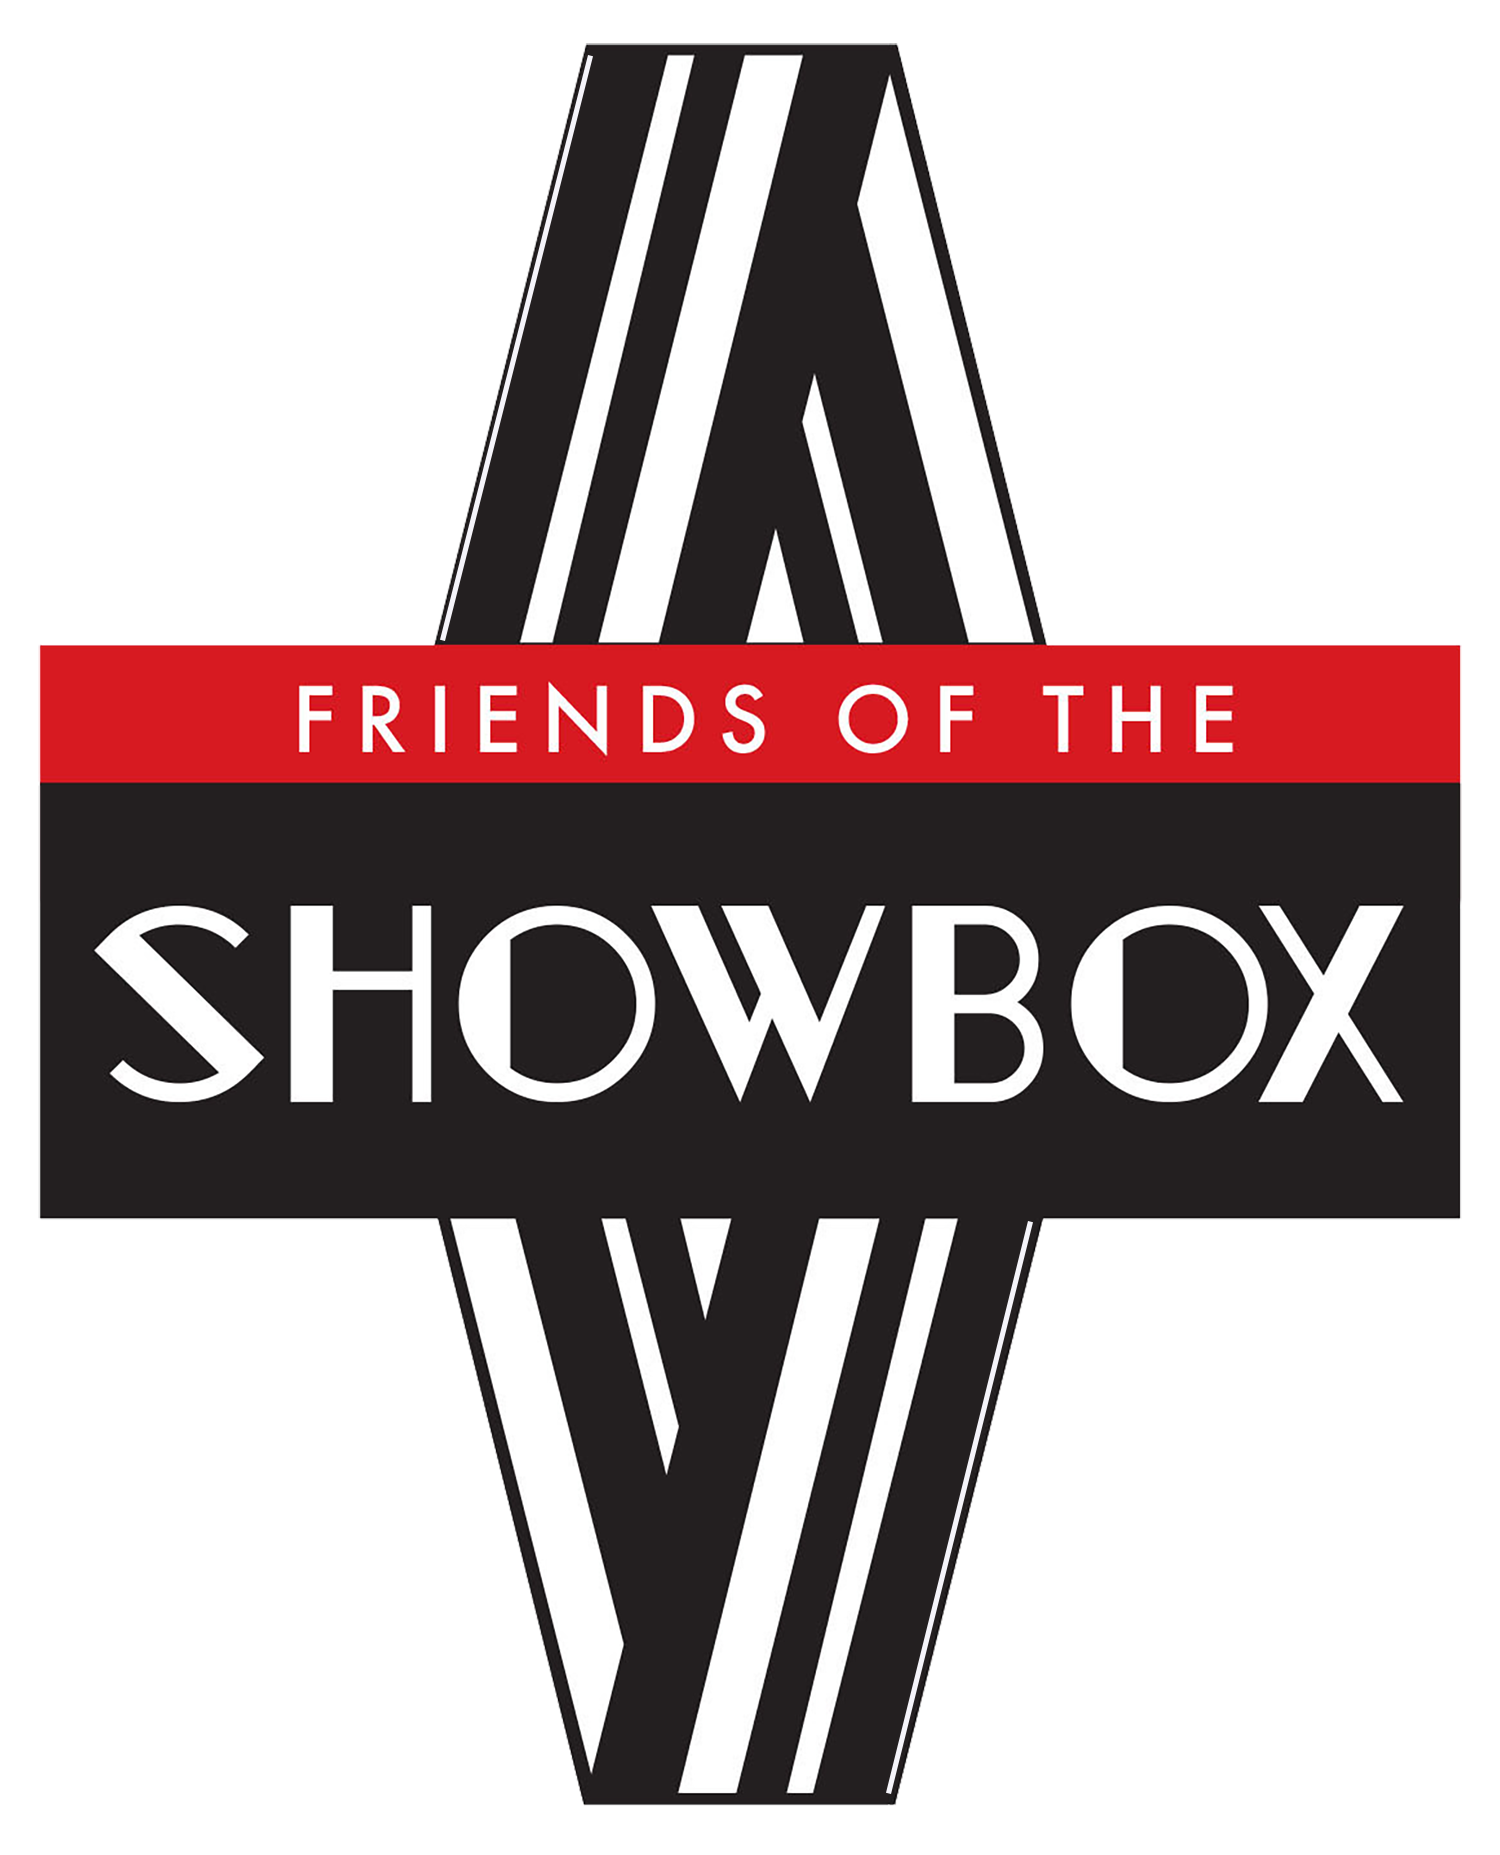 Friends of the Showbox